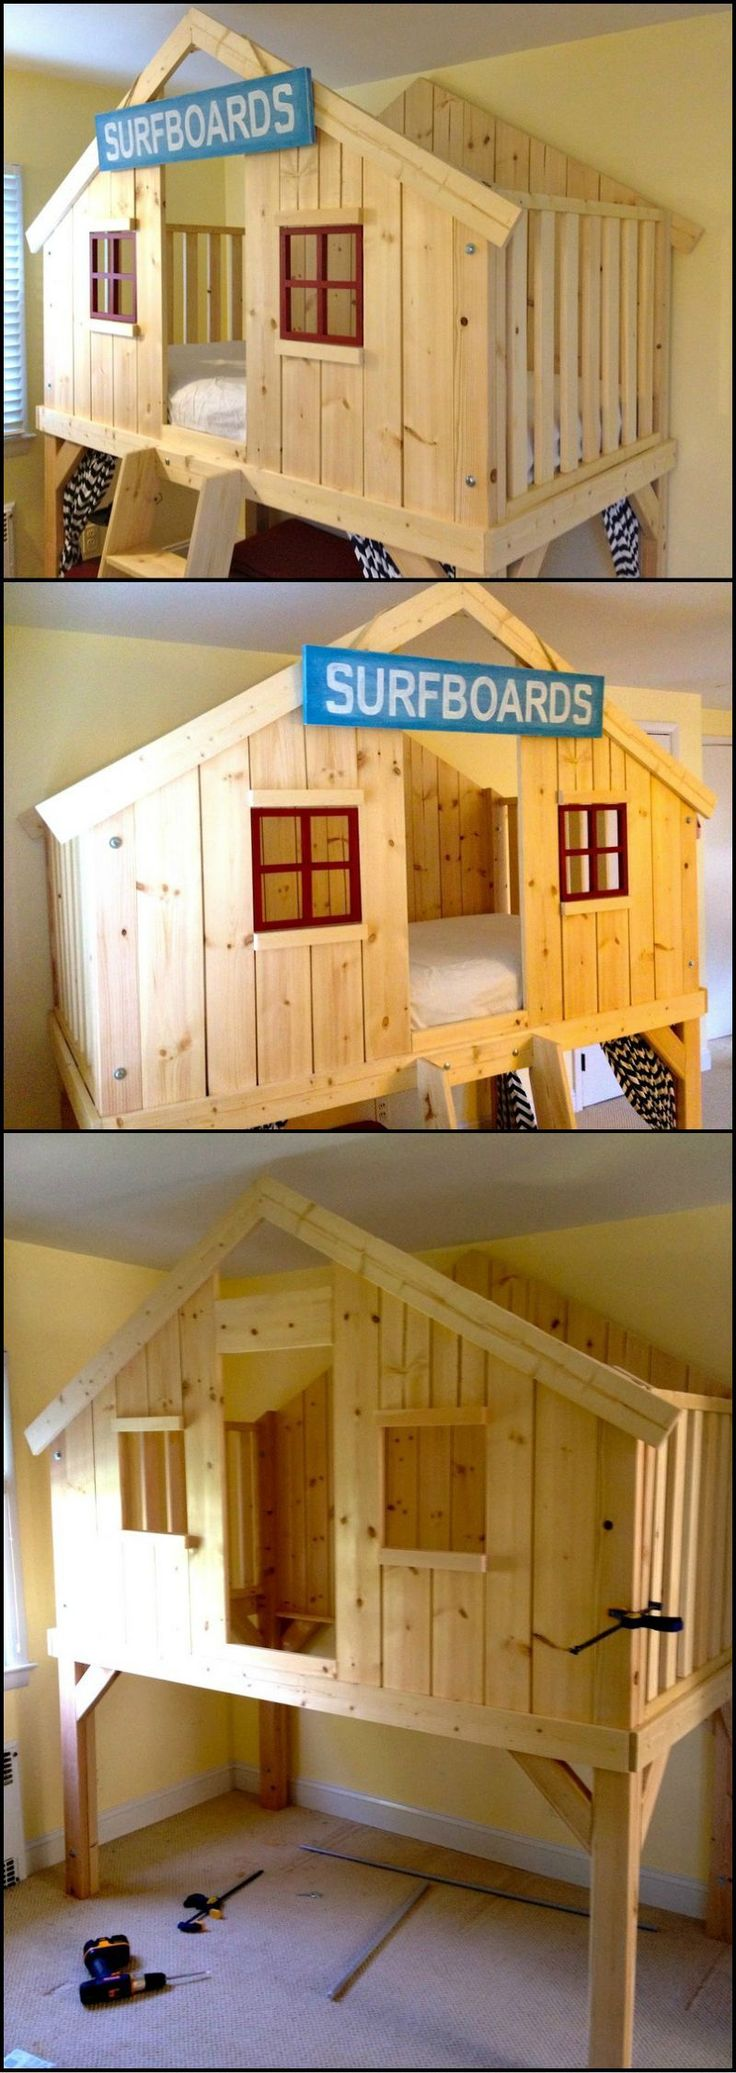 This is a bed the kids will love and the parents will have interesting time making :-P  http://theownerbuildernetwork.co/easy-diy-projects/diy-bed-projects/diy-clubhouse-bed/  With a little bit of tweaking it could be turned into a castle, a tree house or anything else the kids would like.  Isn't this a great project for the kids?